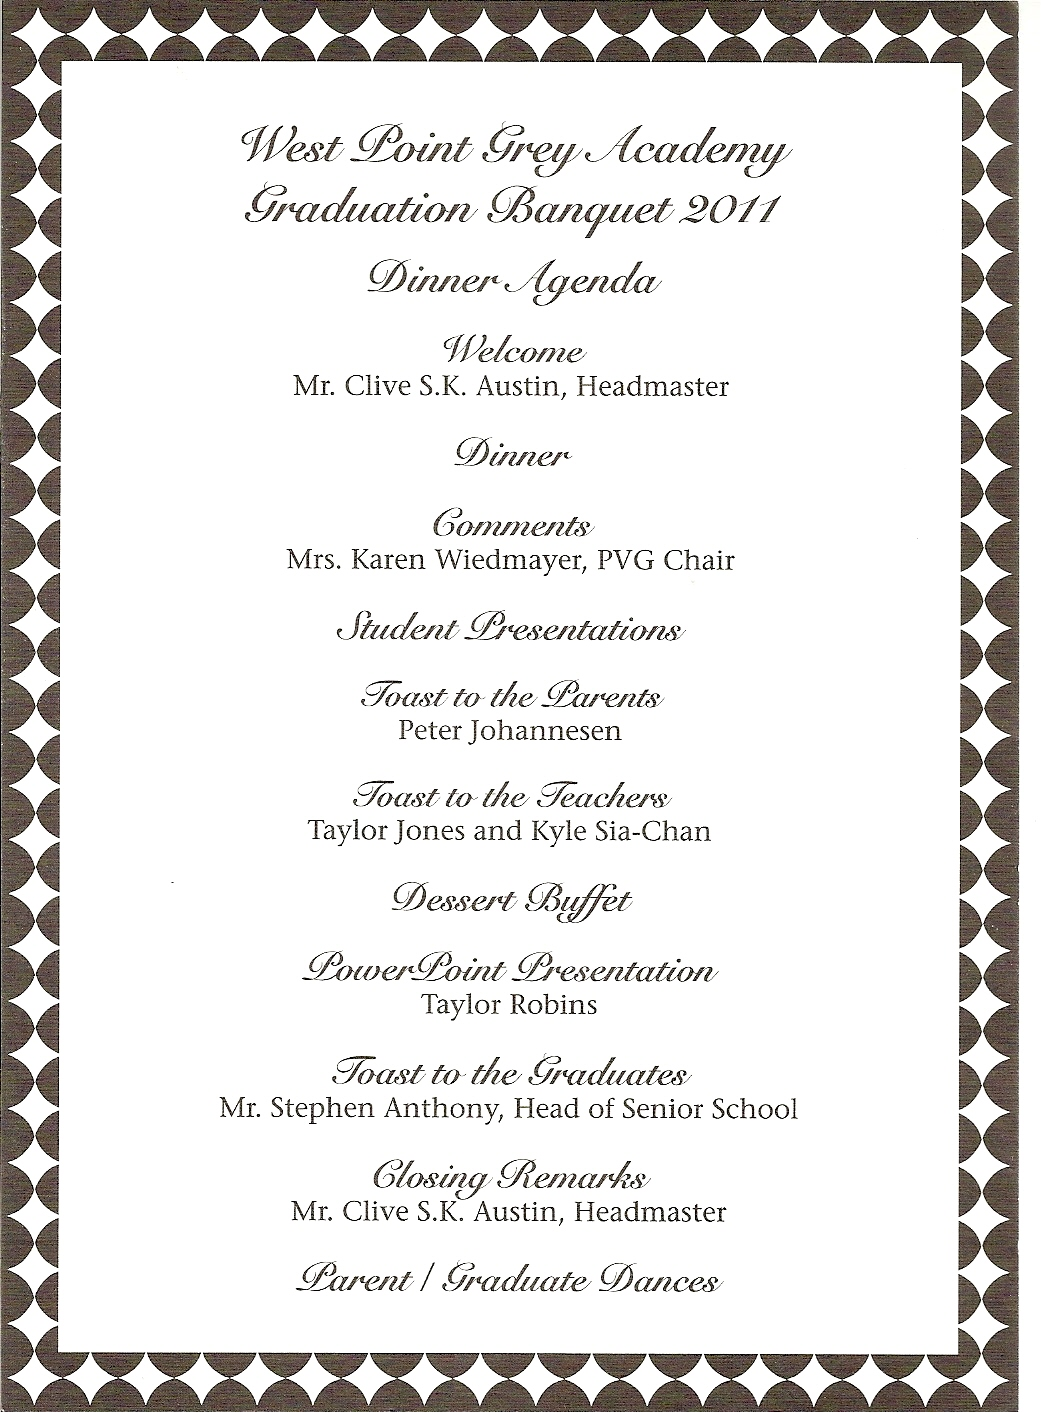 sports program template free - donna 39 s report wpga graduation banquet teddy